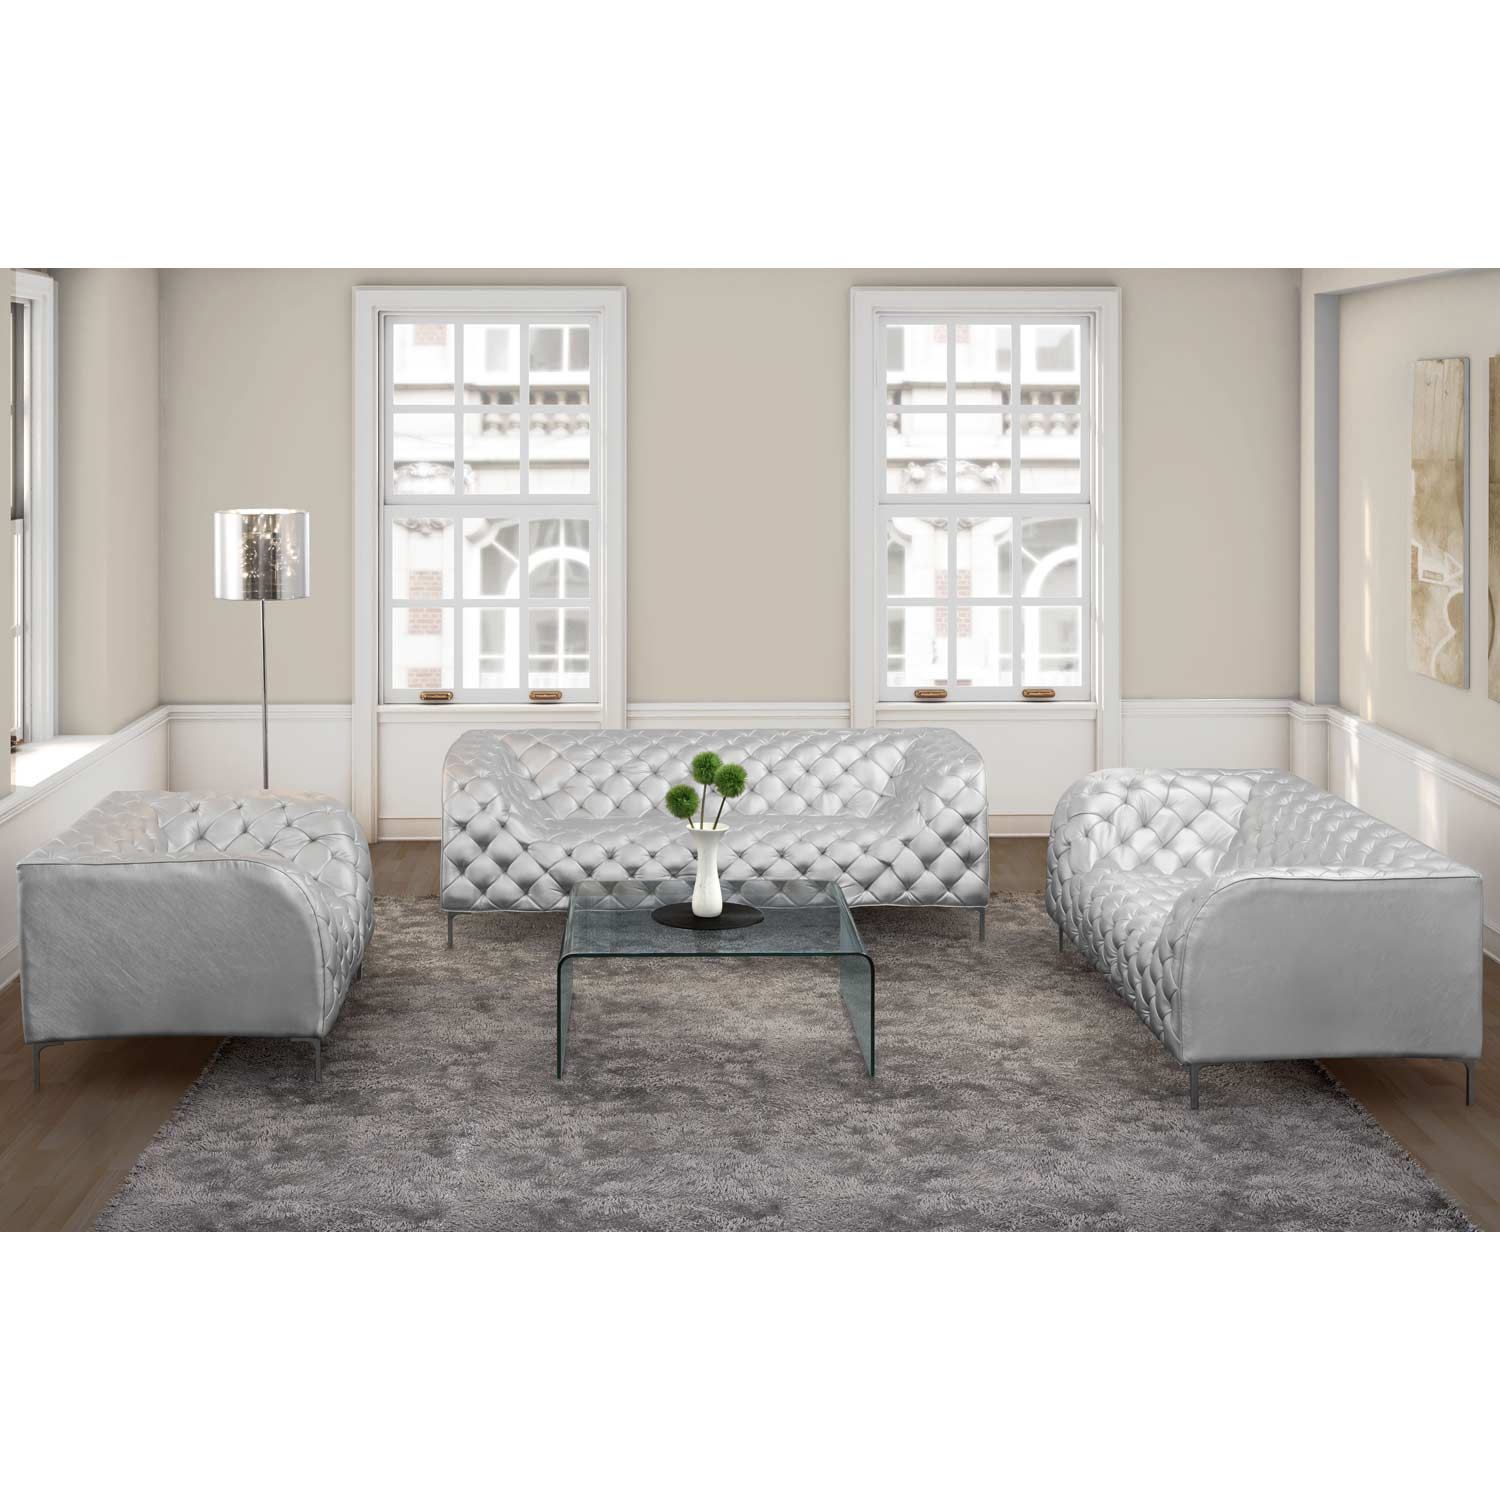 Providence Tufted Sofa - Chrome Steel, Silver - ZM-900278